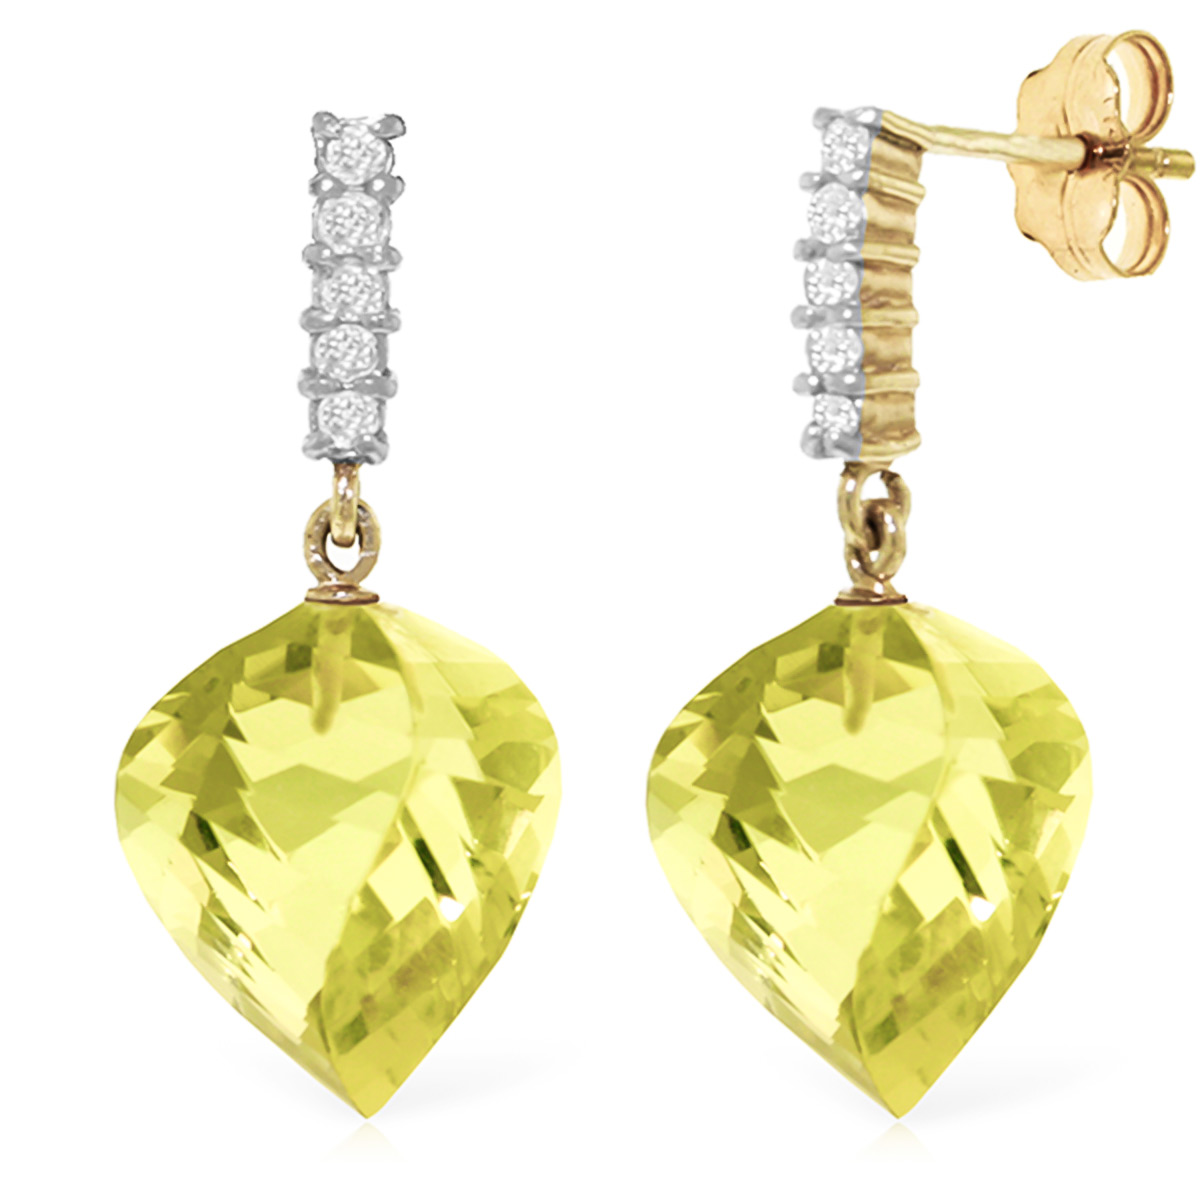 Lemon Quartz Stud Earrings 21.65 ctw in 9ct Gold